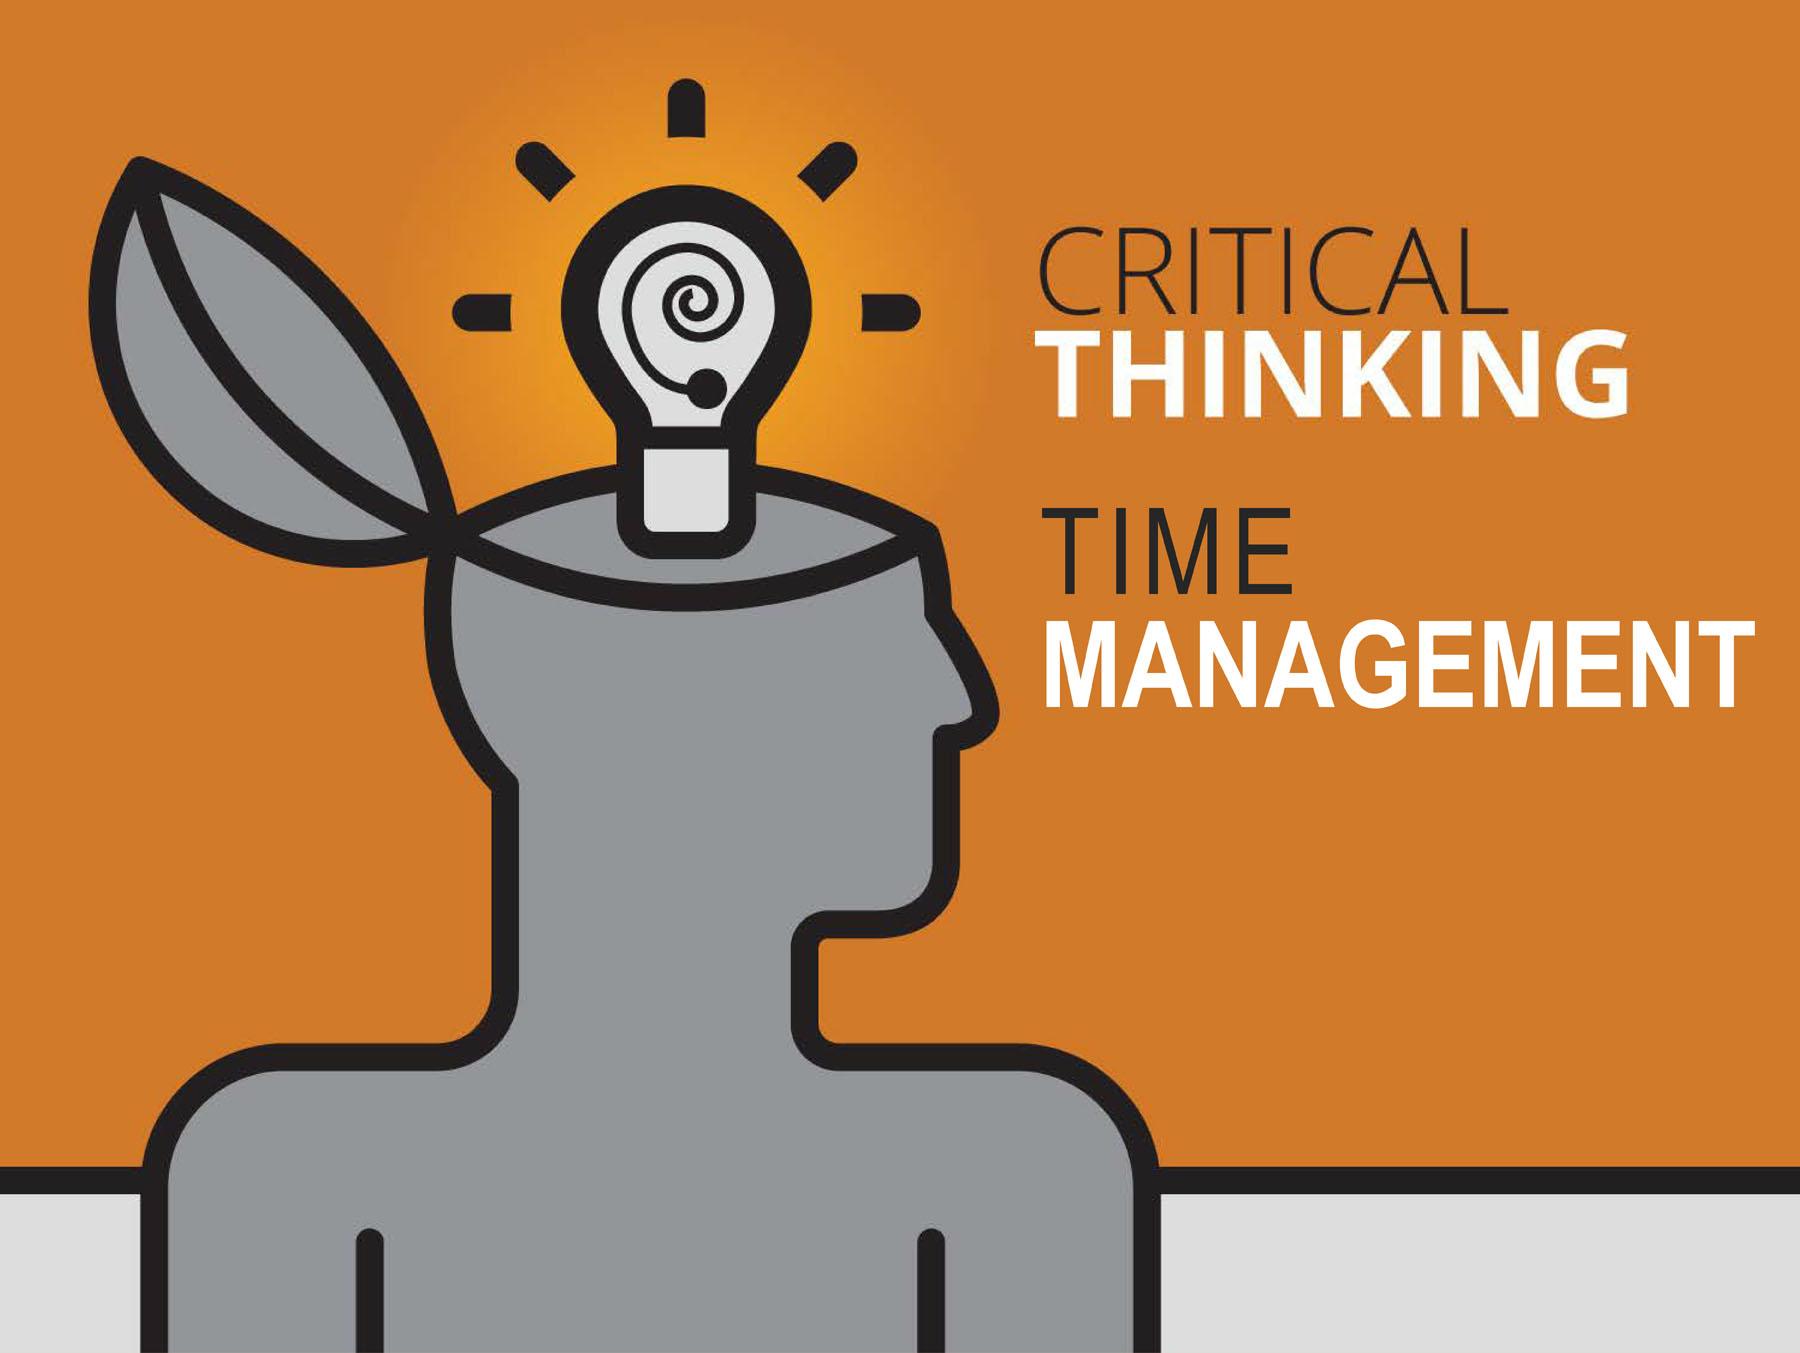 critical thinking management business Msc102: human relations in business critical thinking assignmentread the following document on management and leadership it will provide an insight and starting.